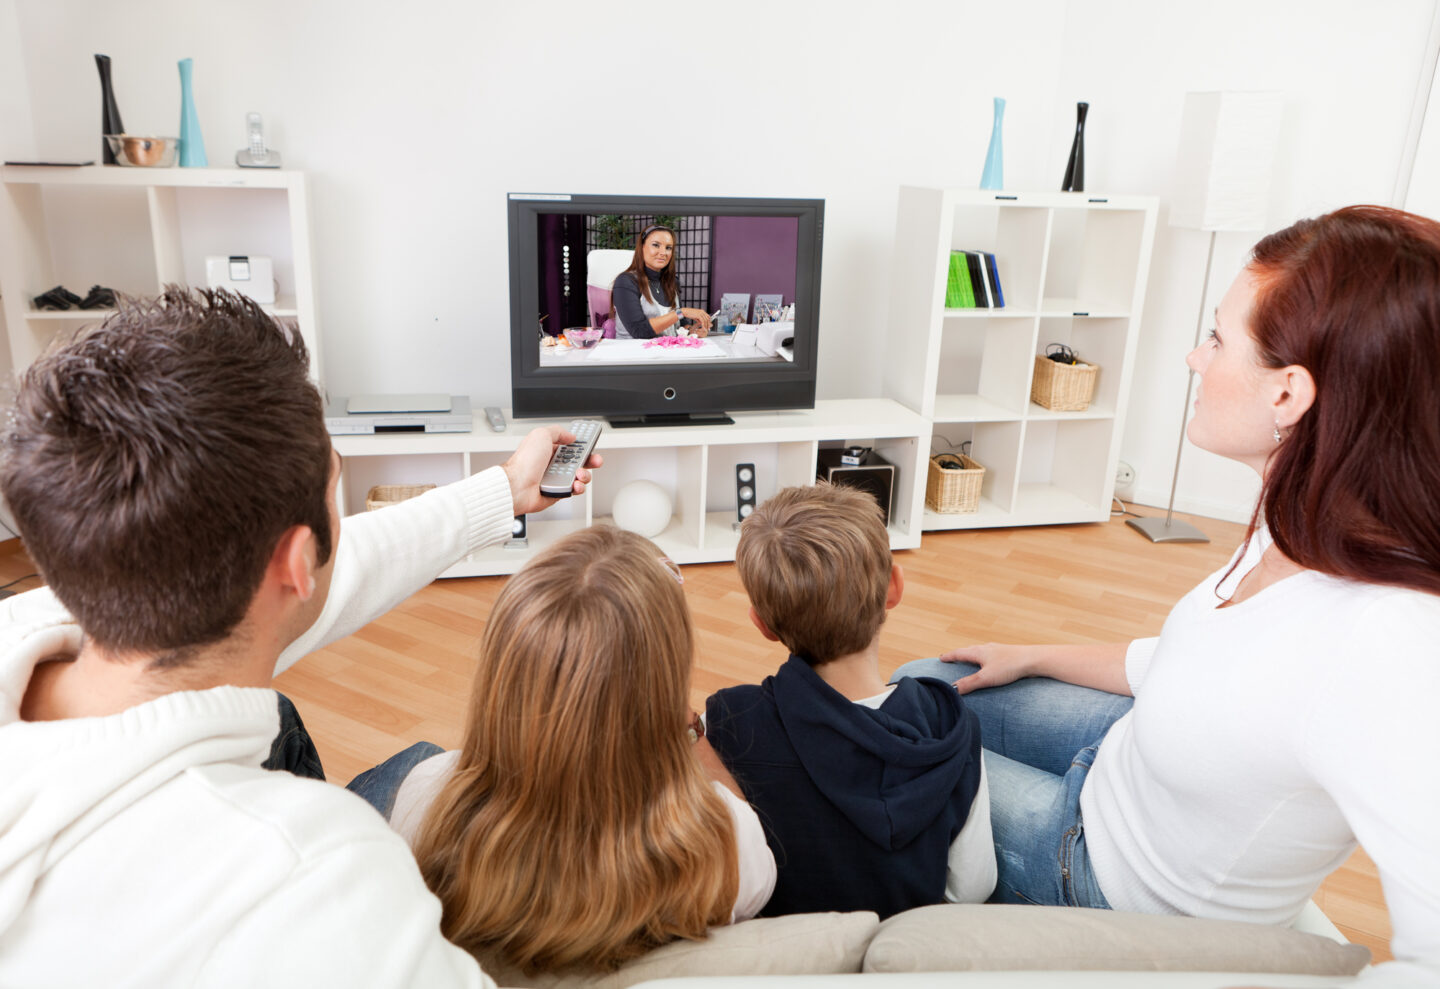 Family watching Netflix TV together on the sofa